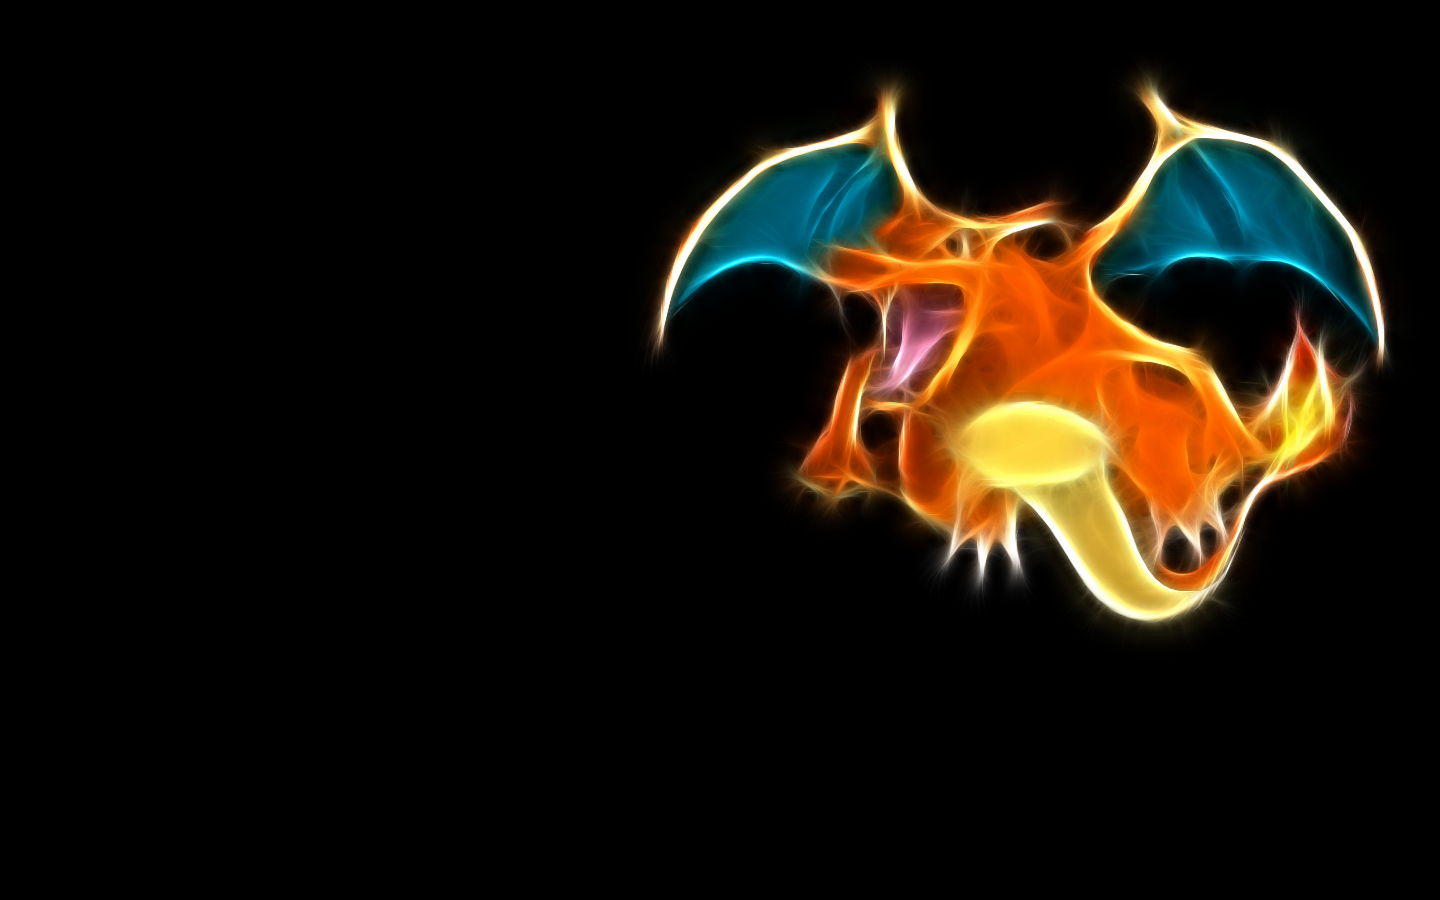 Charizard Backgrounds  Wallpaper  1440x900